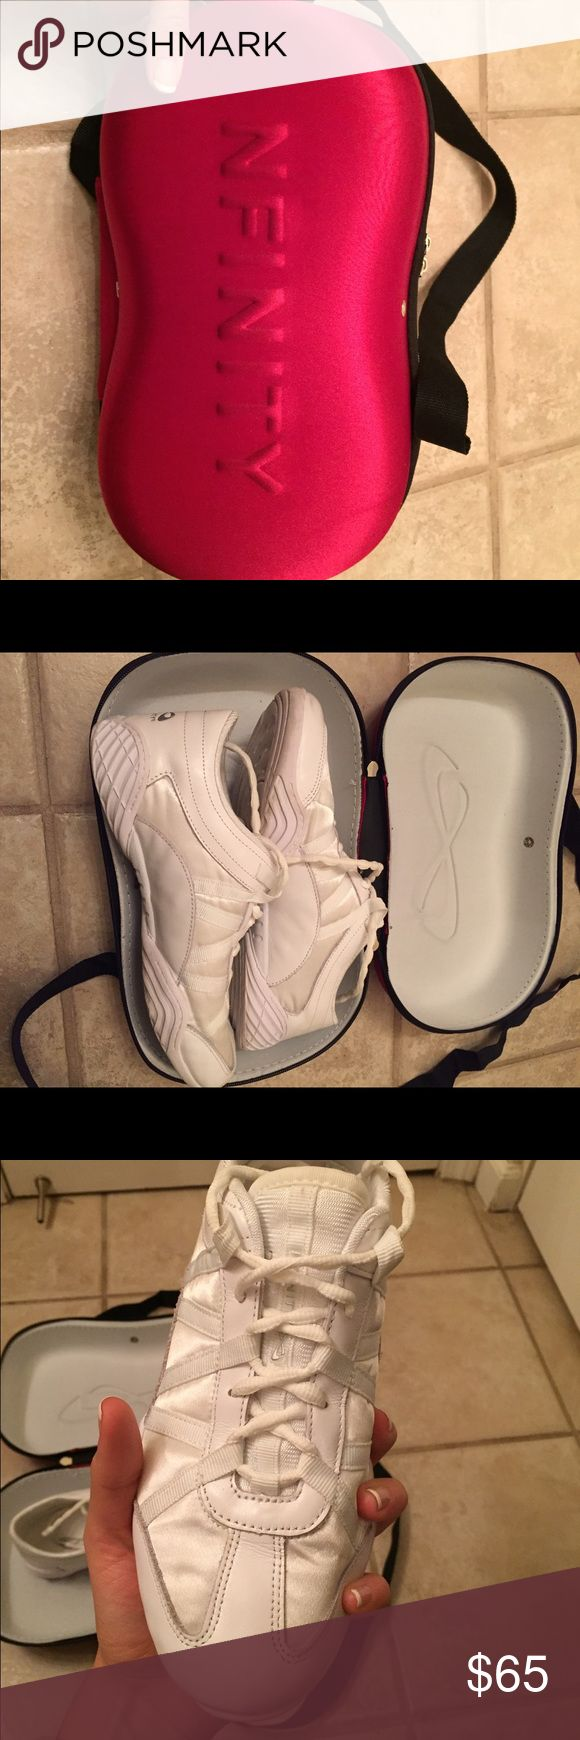 Nfinity Evolution Cheerleading Shoes Nfinity Evolution's: Worn only one time, amazing condition, size 10.5 women's, will come in box they came in. Shoes Sneakers